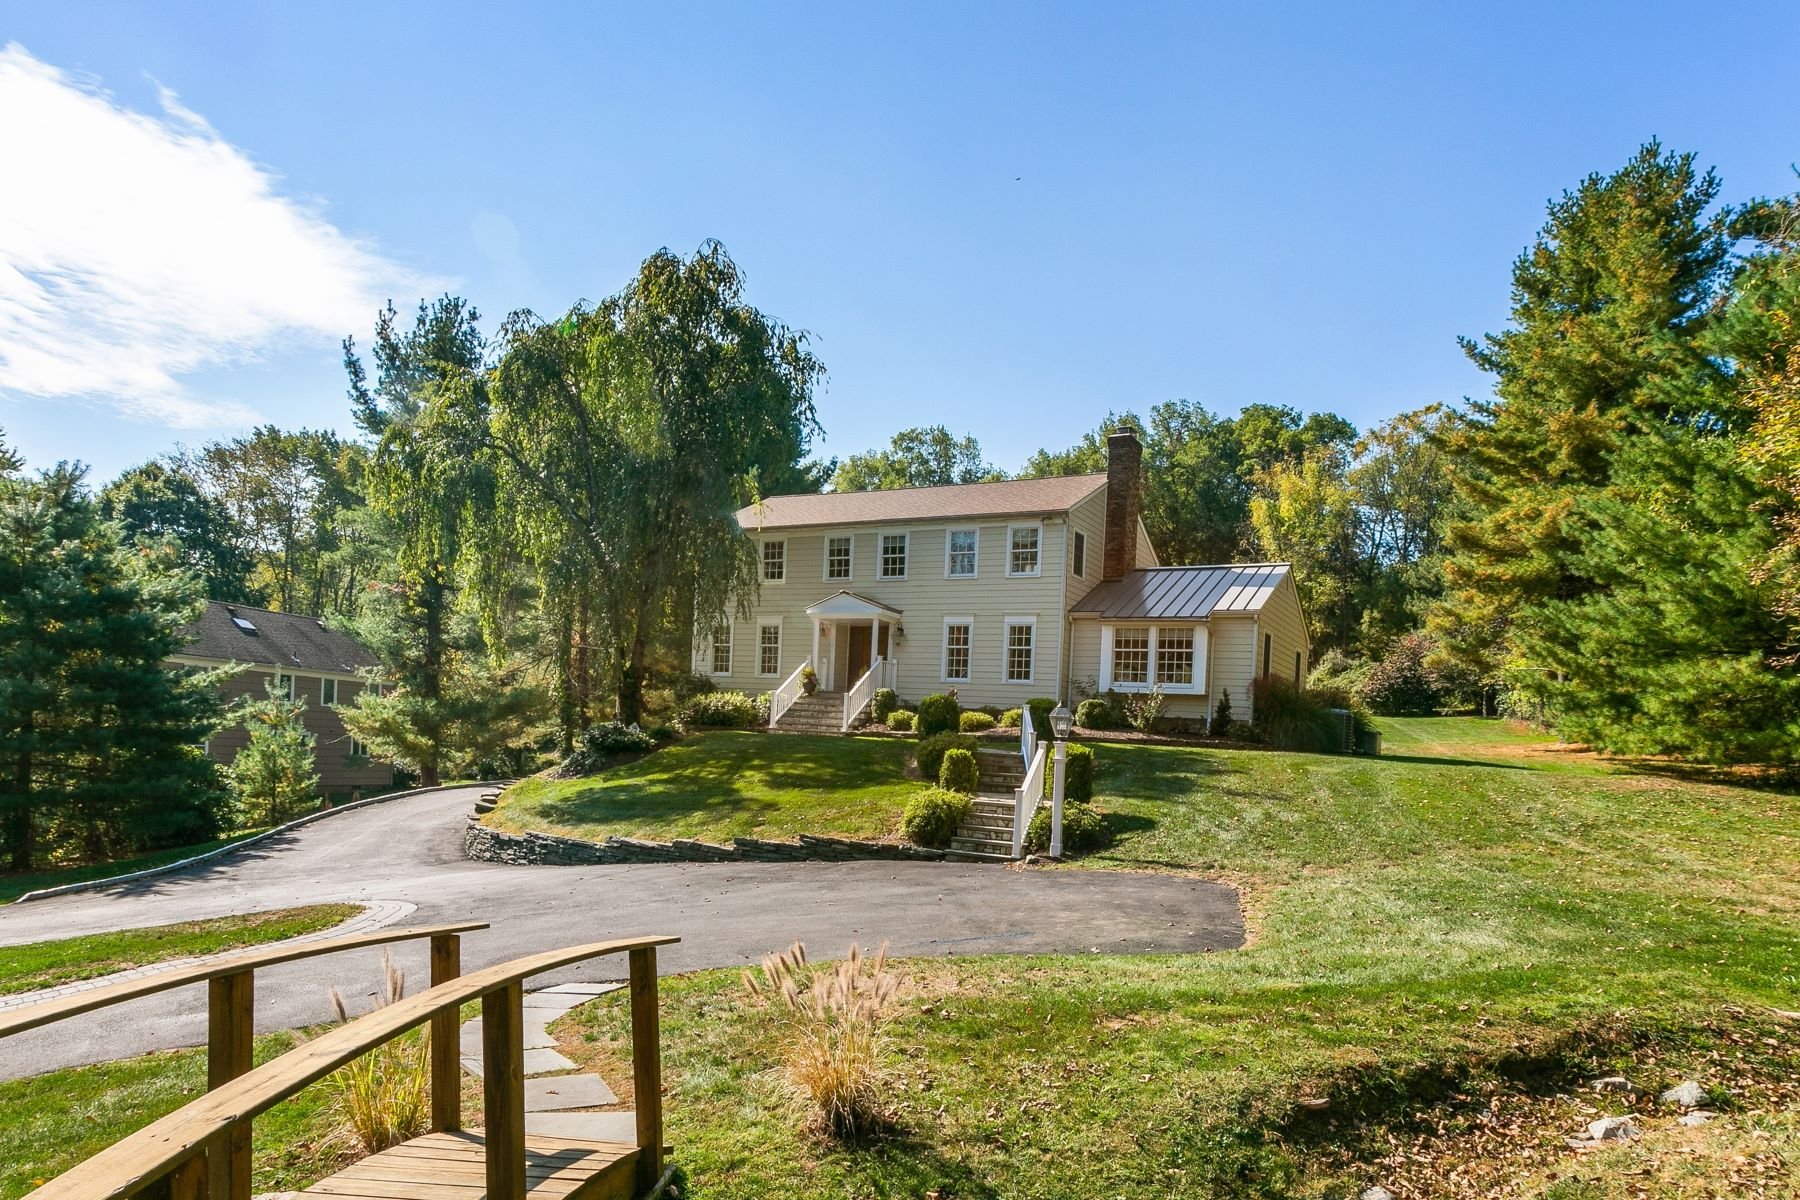 Single Family Homes for Sale at Stunning Colonial 71 Lowery Lane Mendham, New Jersey 07945 United States